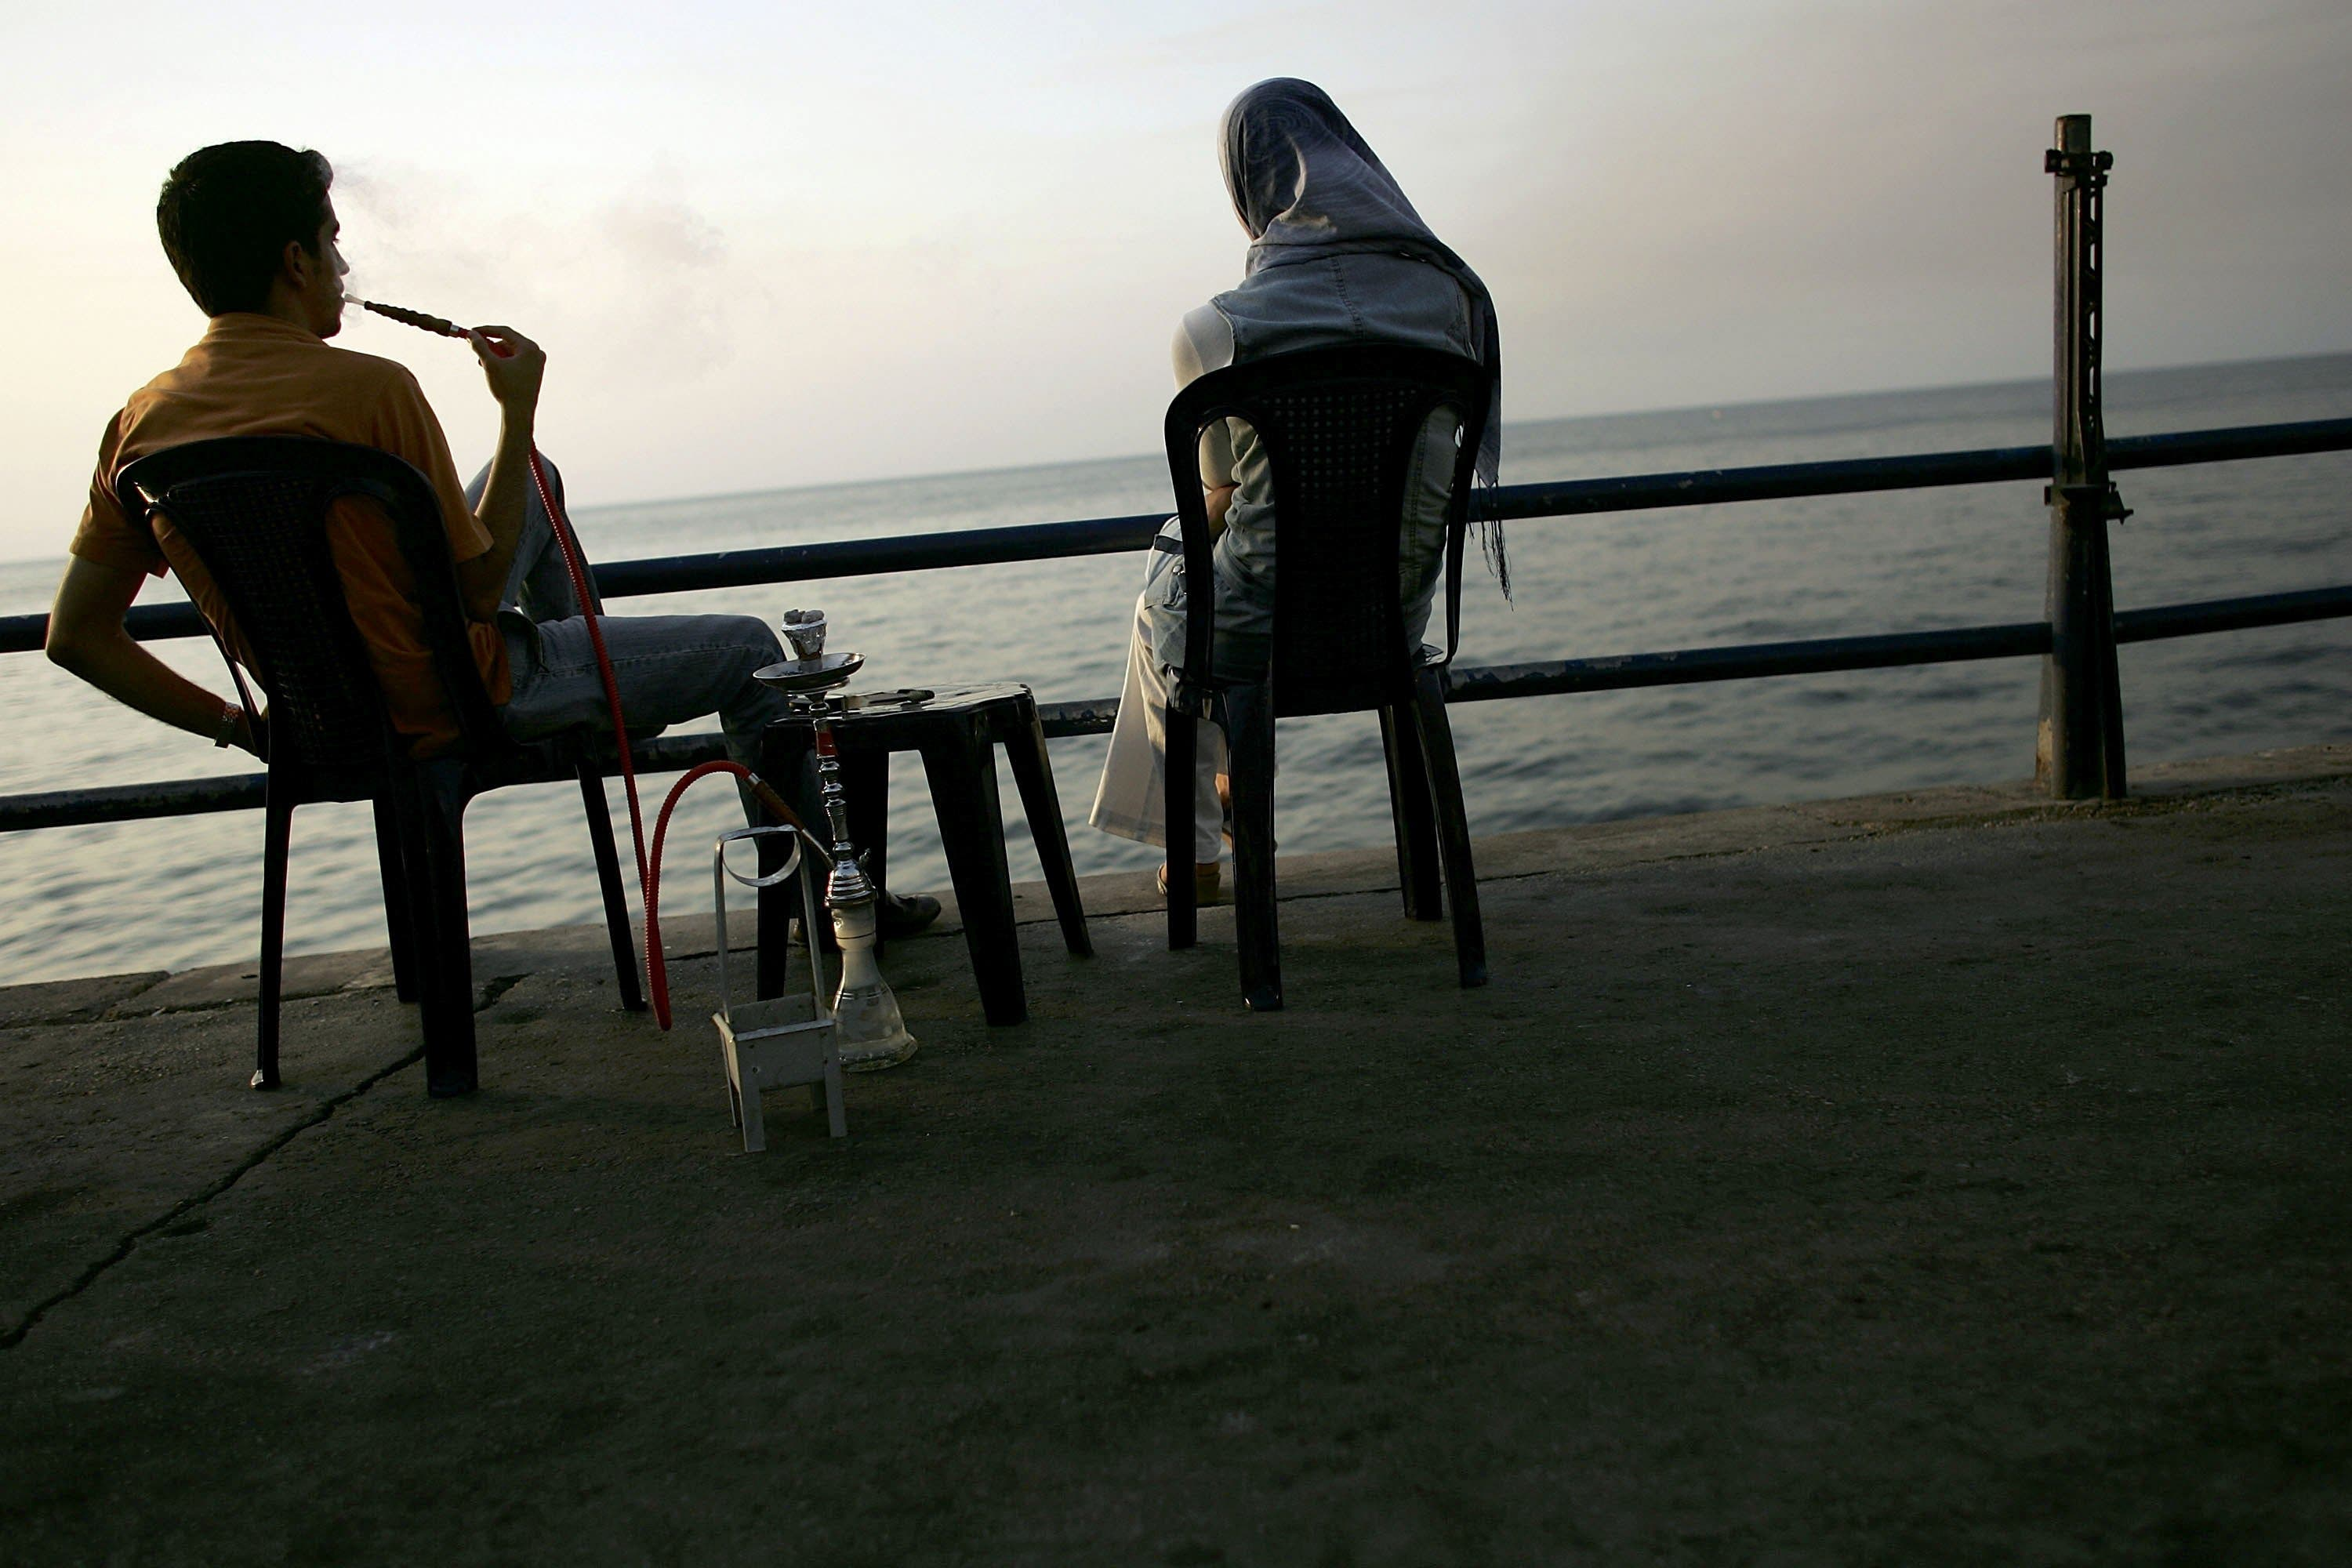 Divorce rates are astoundingly high in Saudi Arabia, where filing for divorce, still taboo,  is not easy.